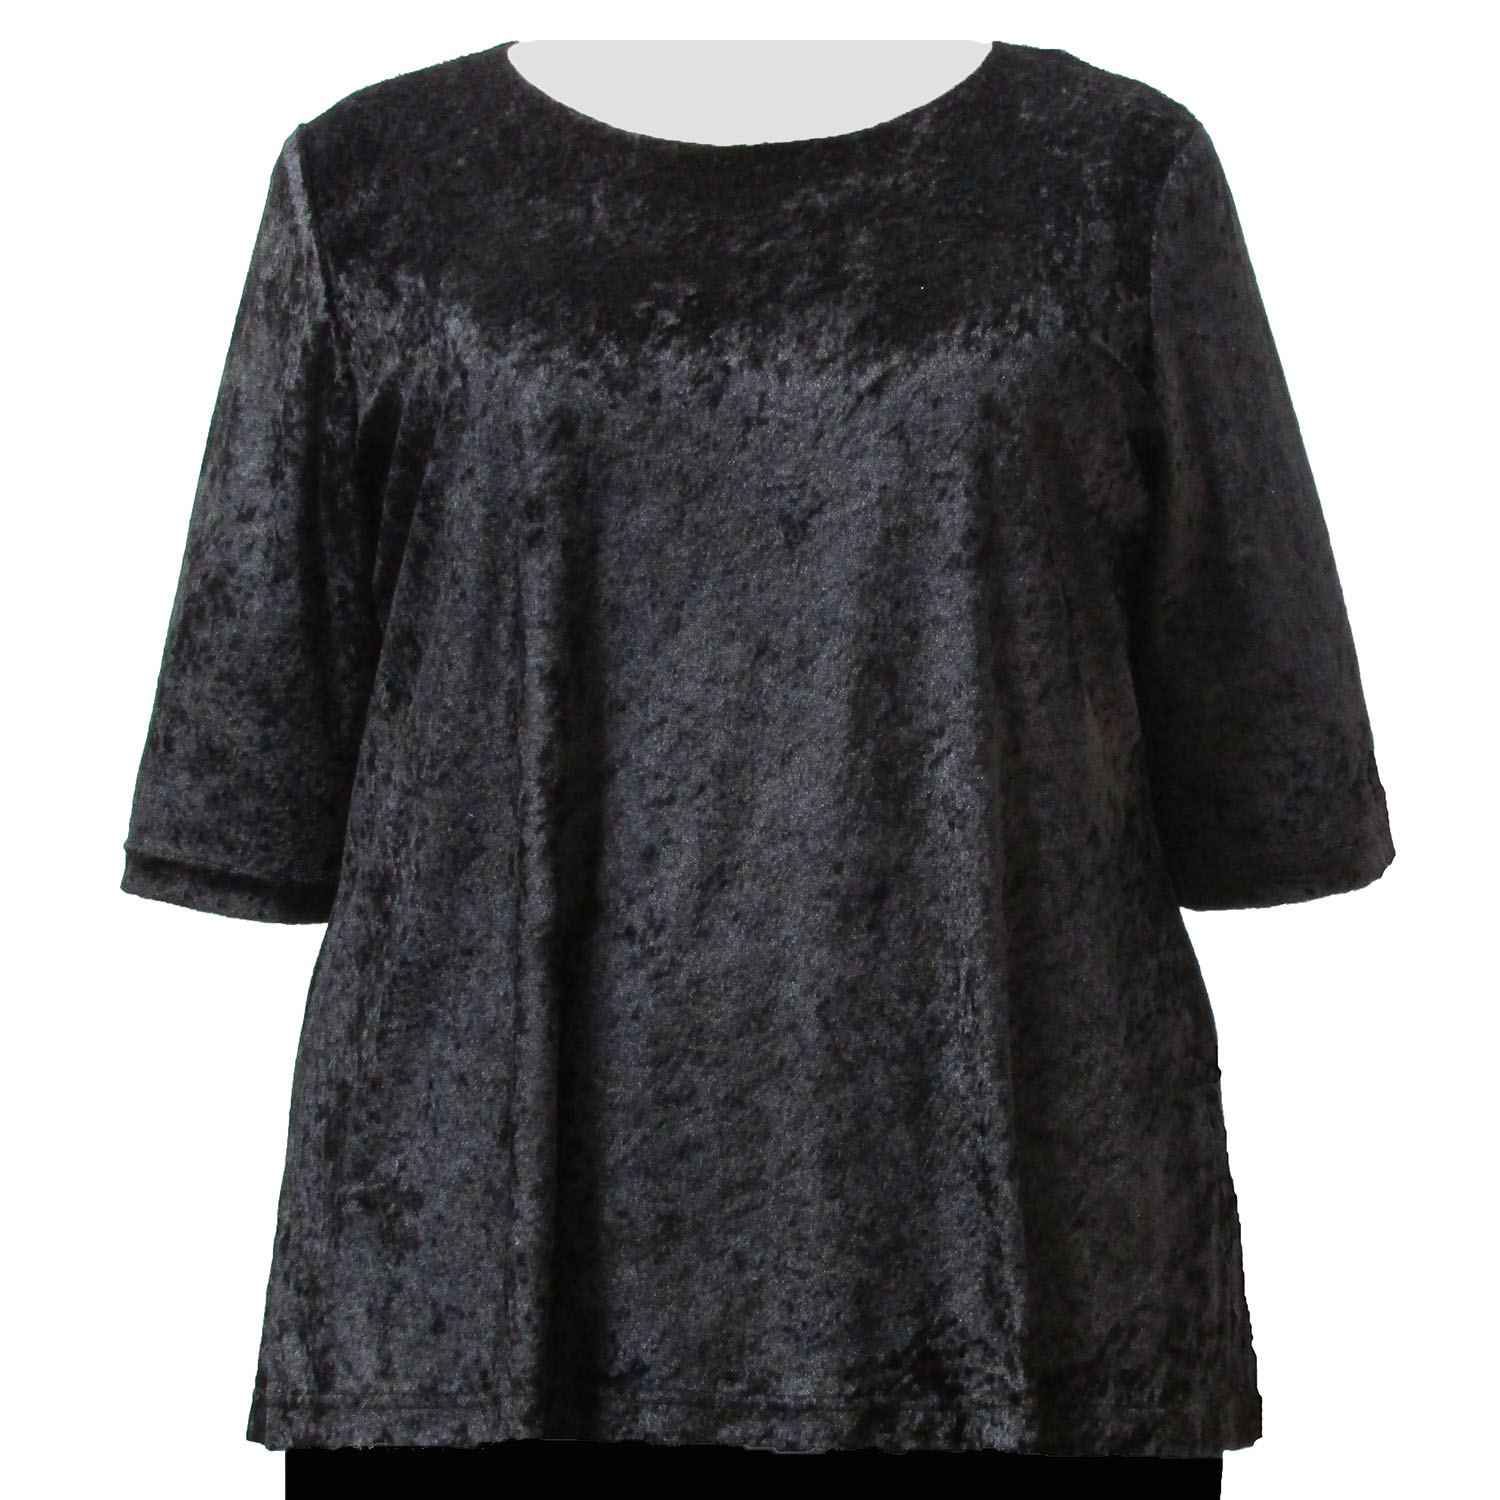 A Personal Touch Black Crushed Panne 3/4 Sleeve Round Neck Pullover Top Woman's Plus Size Top at Sears.com